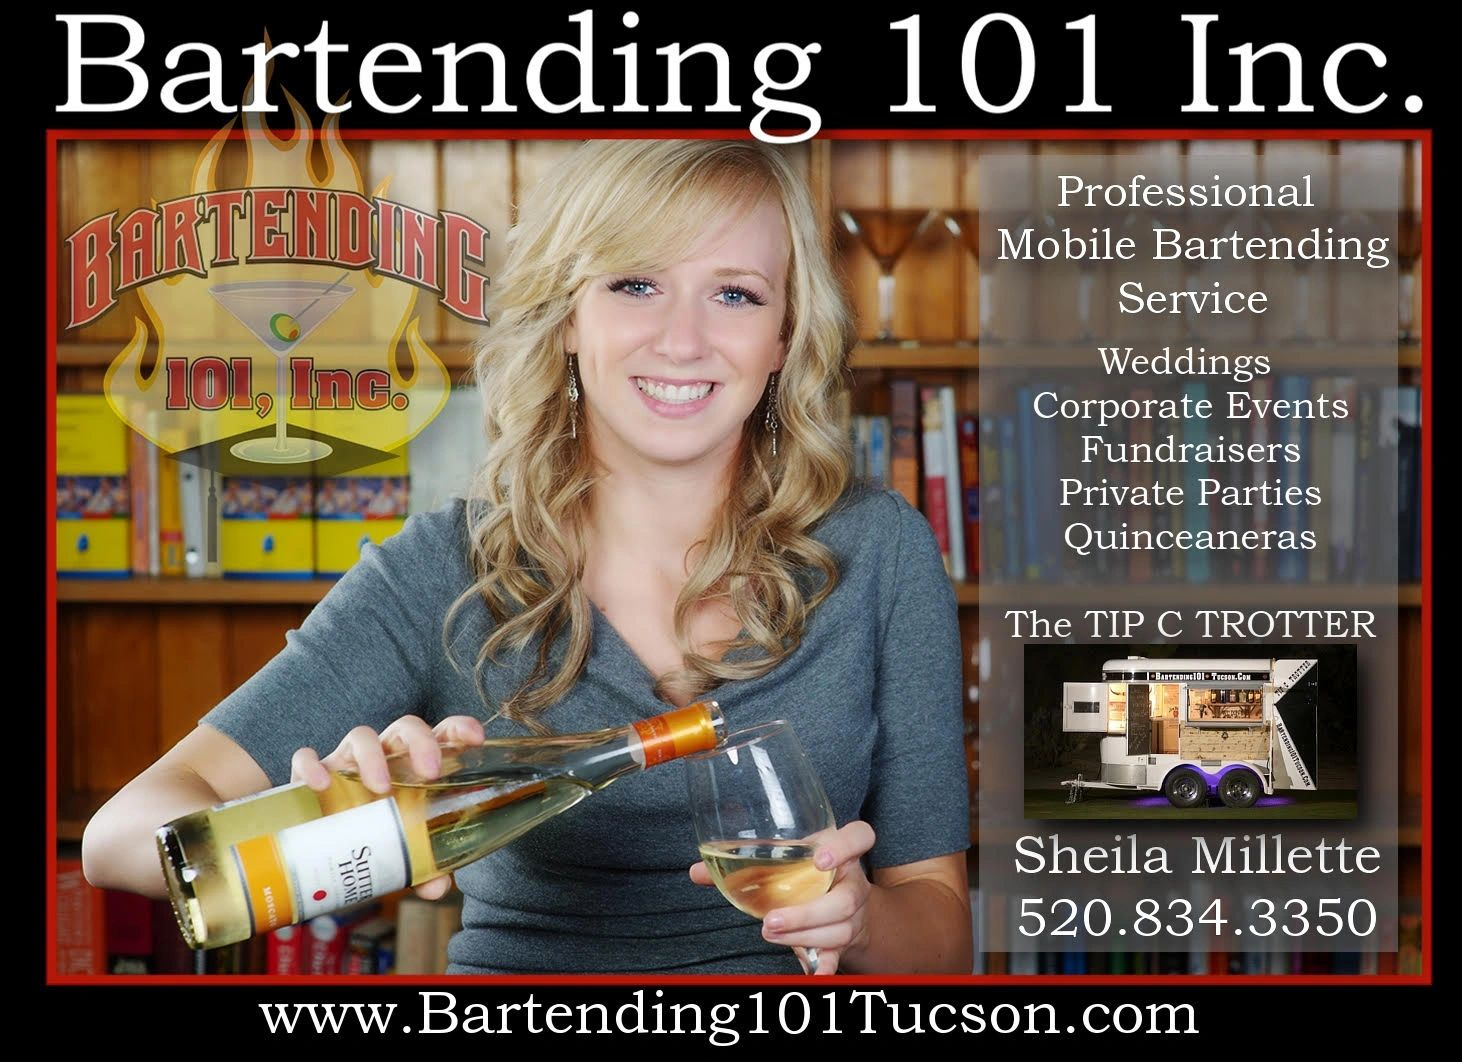 Bartending service and mobile bartending service in Tucson, Az.